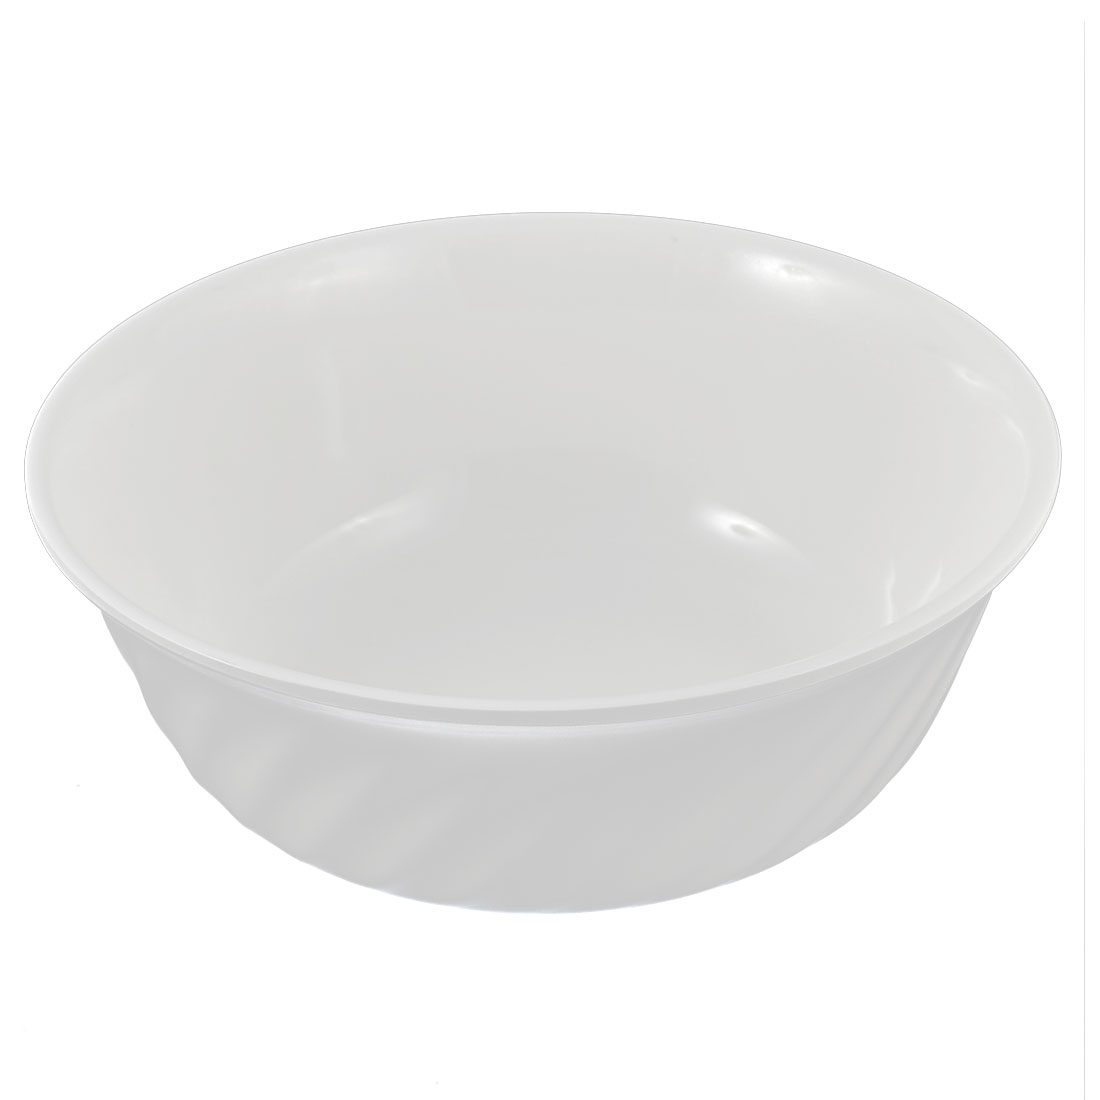 "Home Restaurant Kitchen Party Salad Rice Soup Serving Bowl White 8"" Dia"